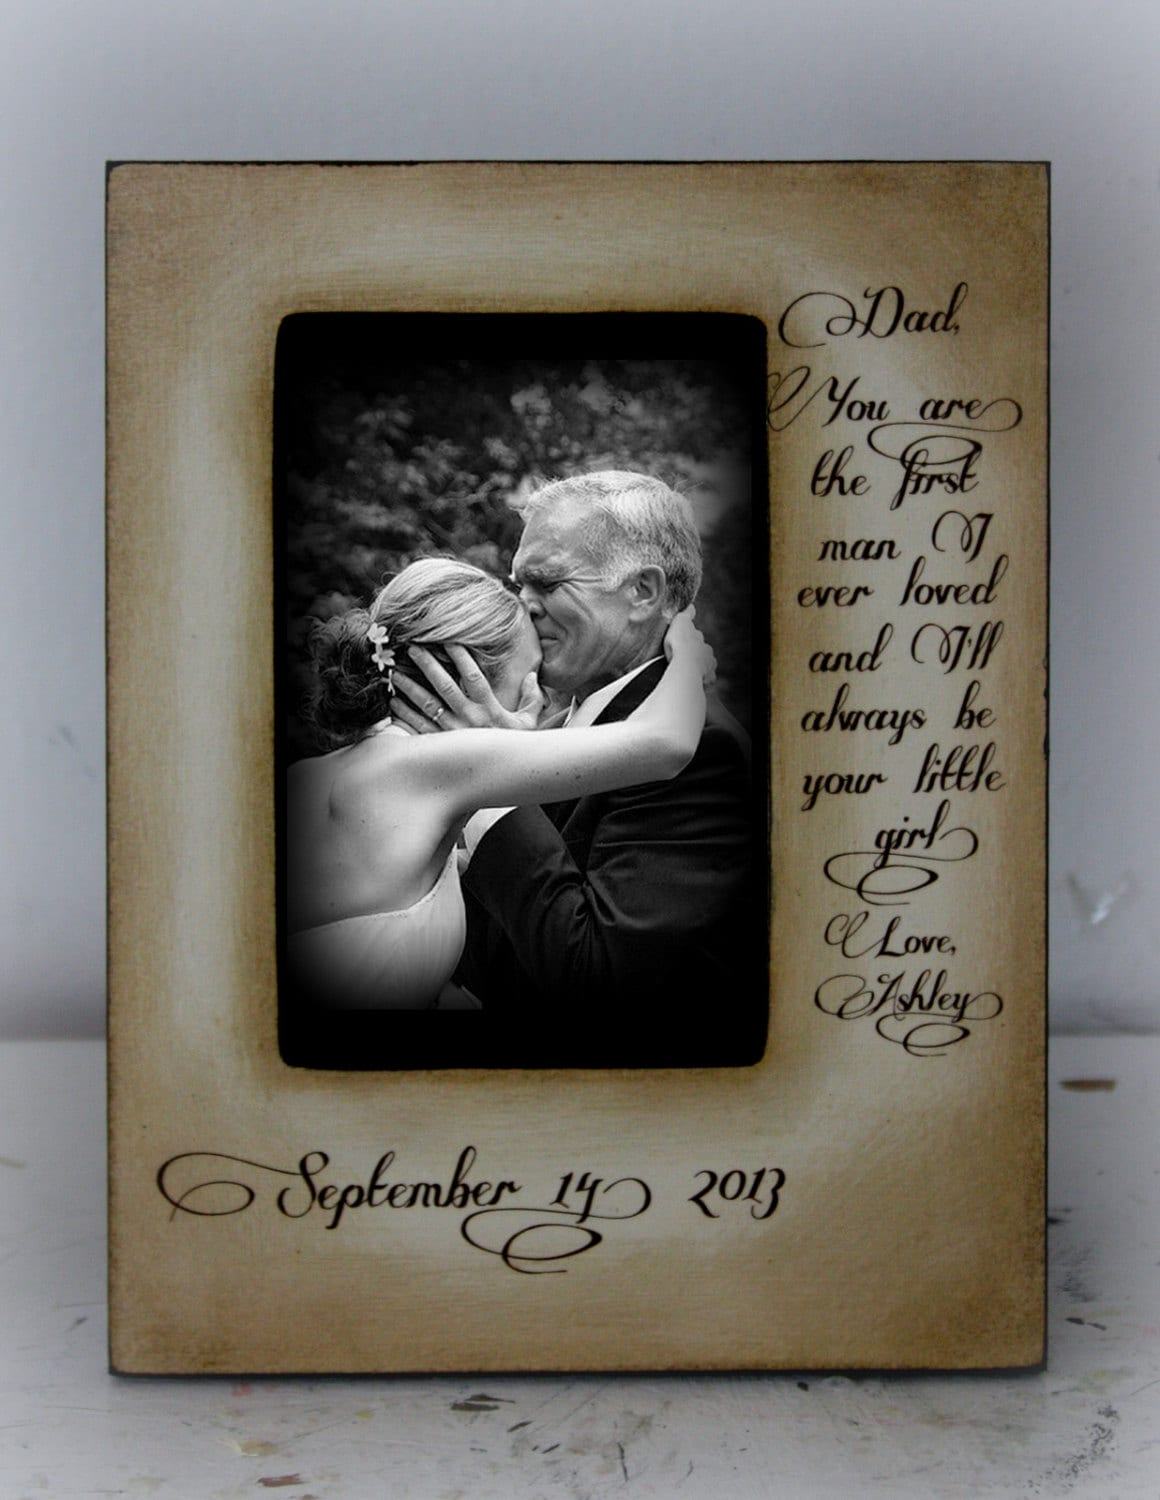 Wedding Gift Ideas For Dad : Father Daughter Wedding Frame Bride First man I ever loved